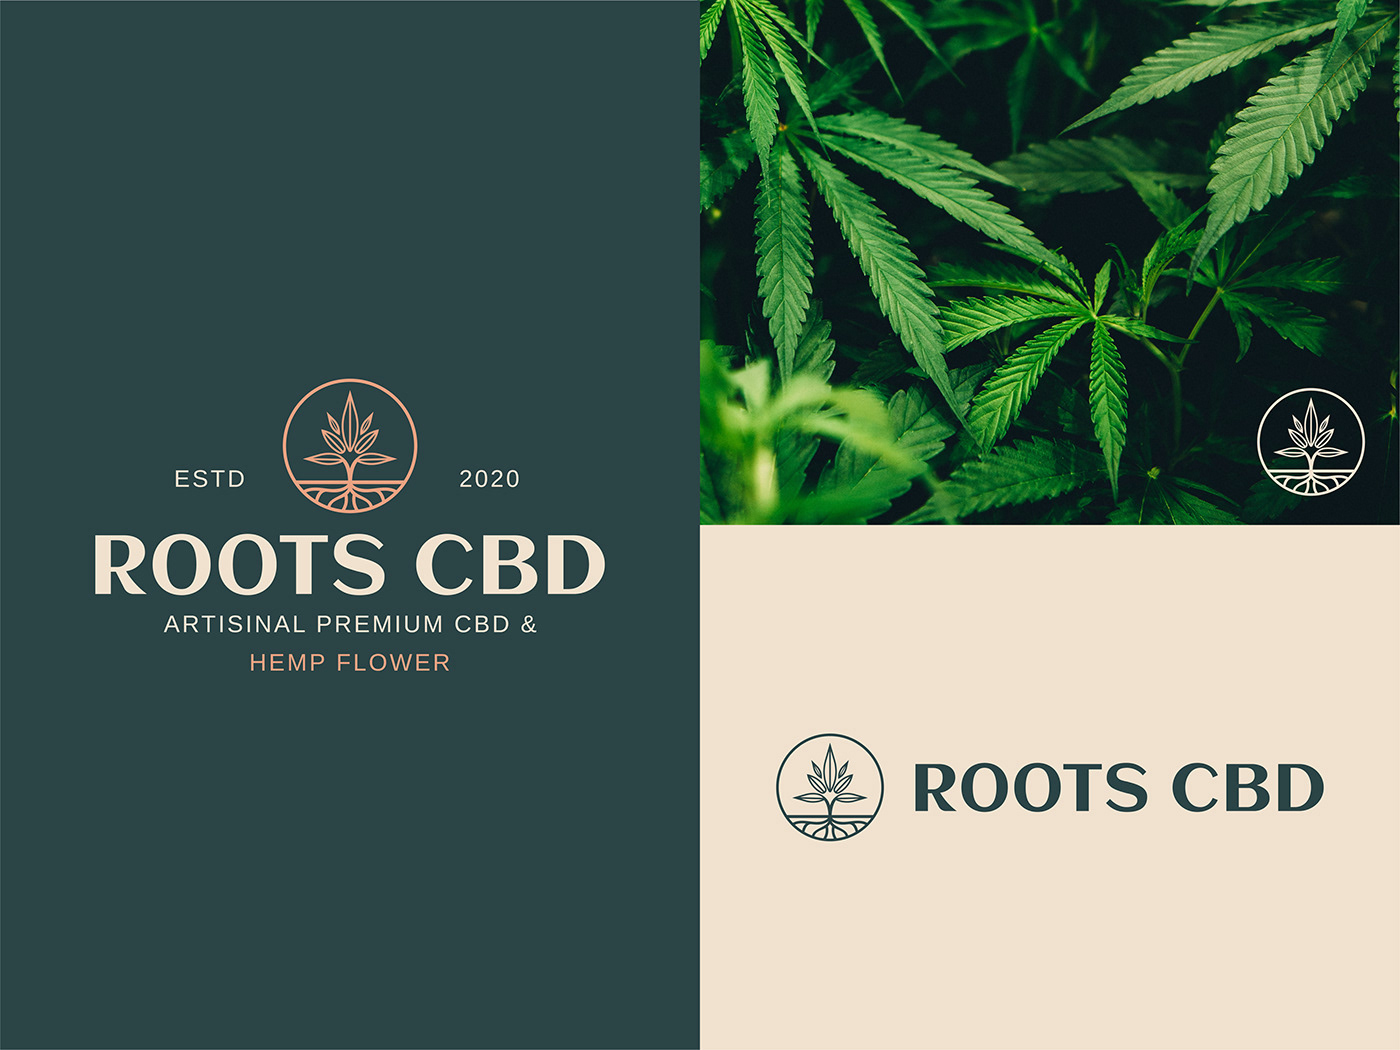 Roots CBD logo construction